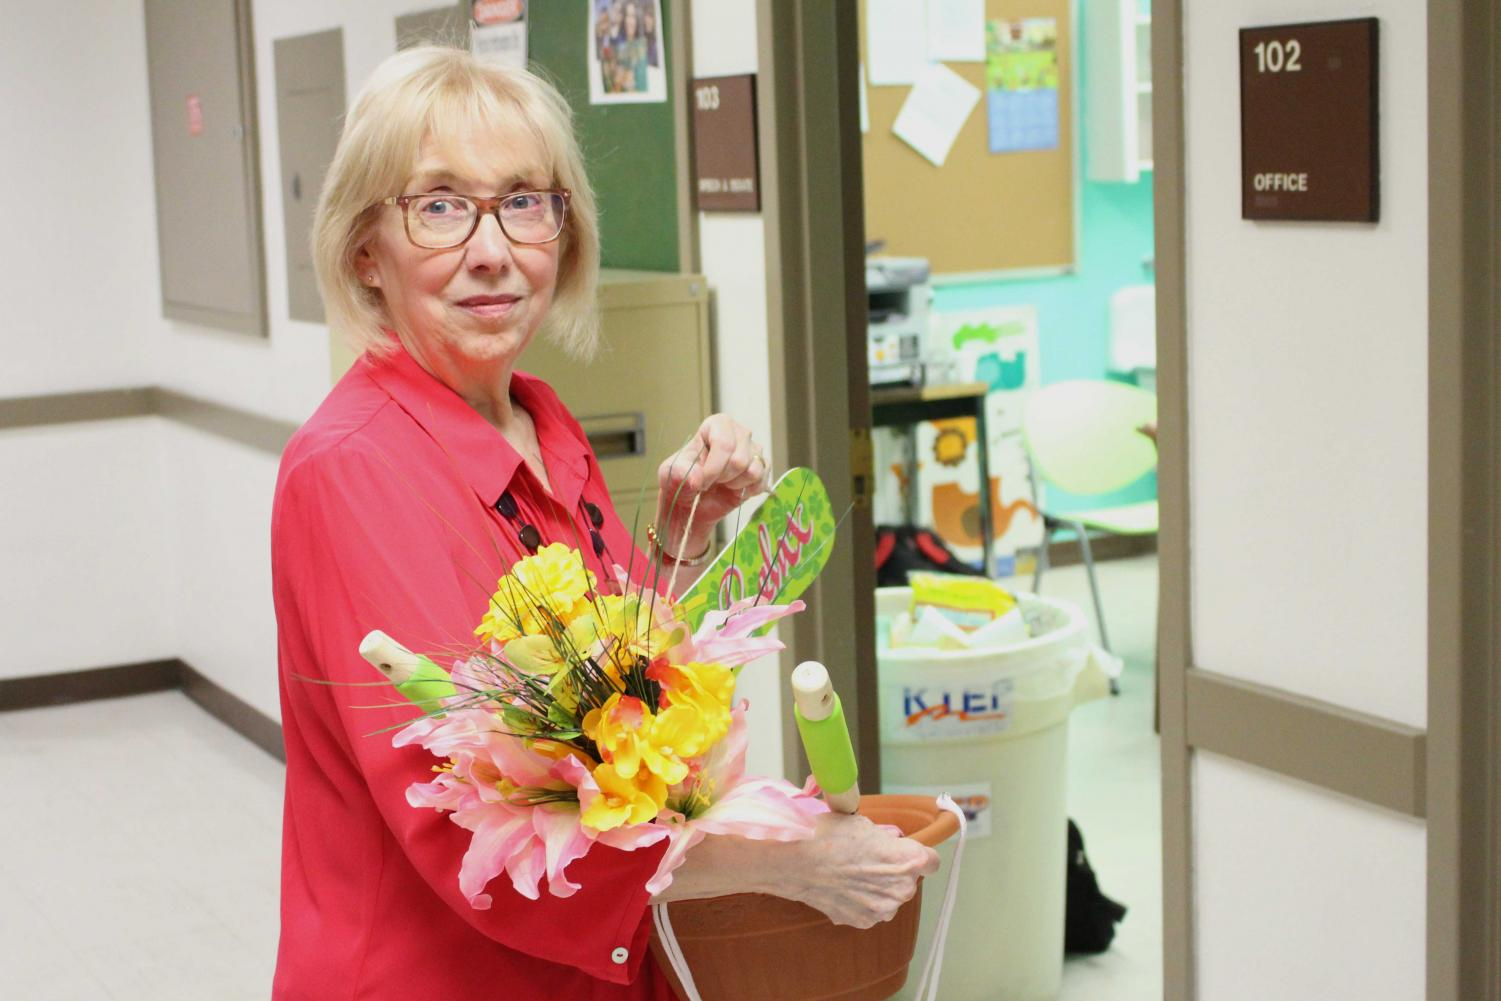 The forensics team hosted a retirement pot luck for Mary Trejo on April 25.